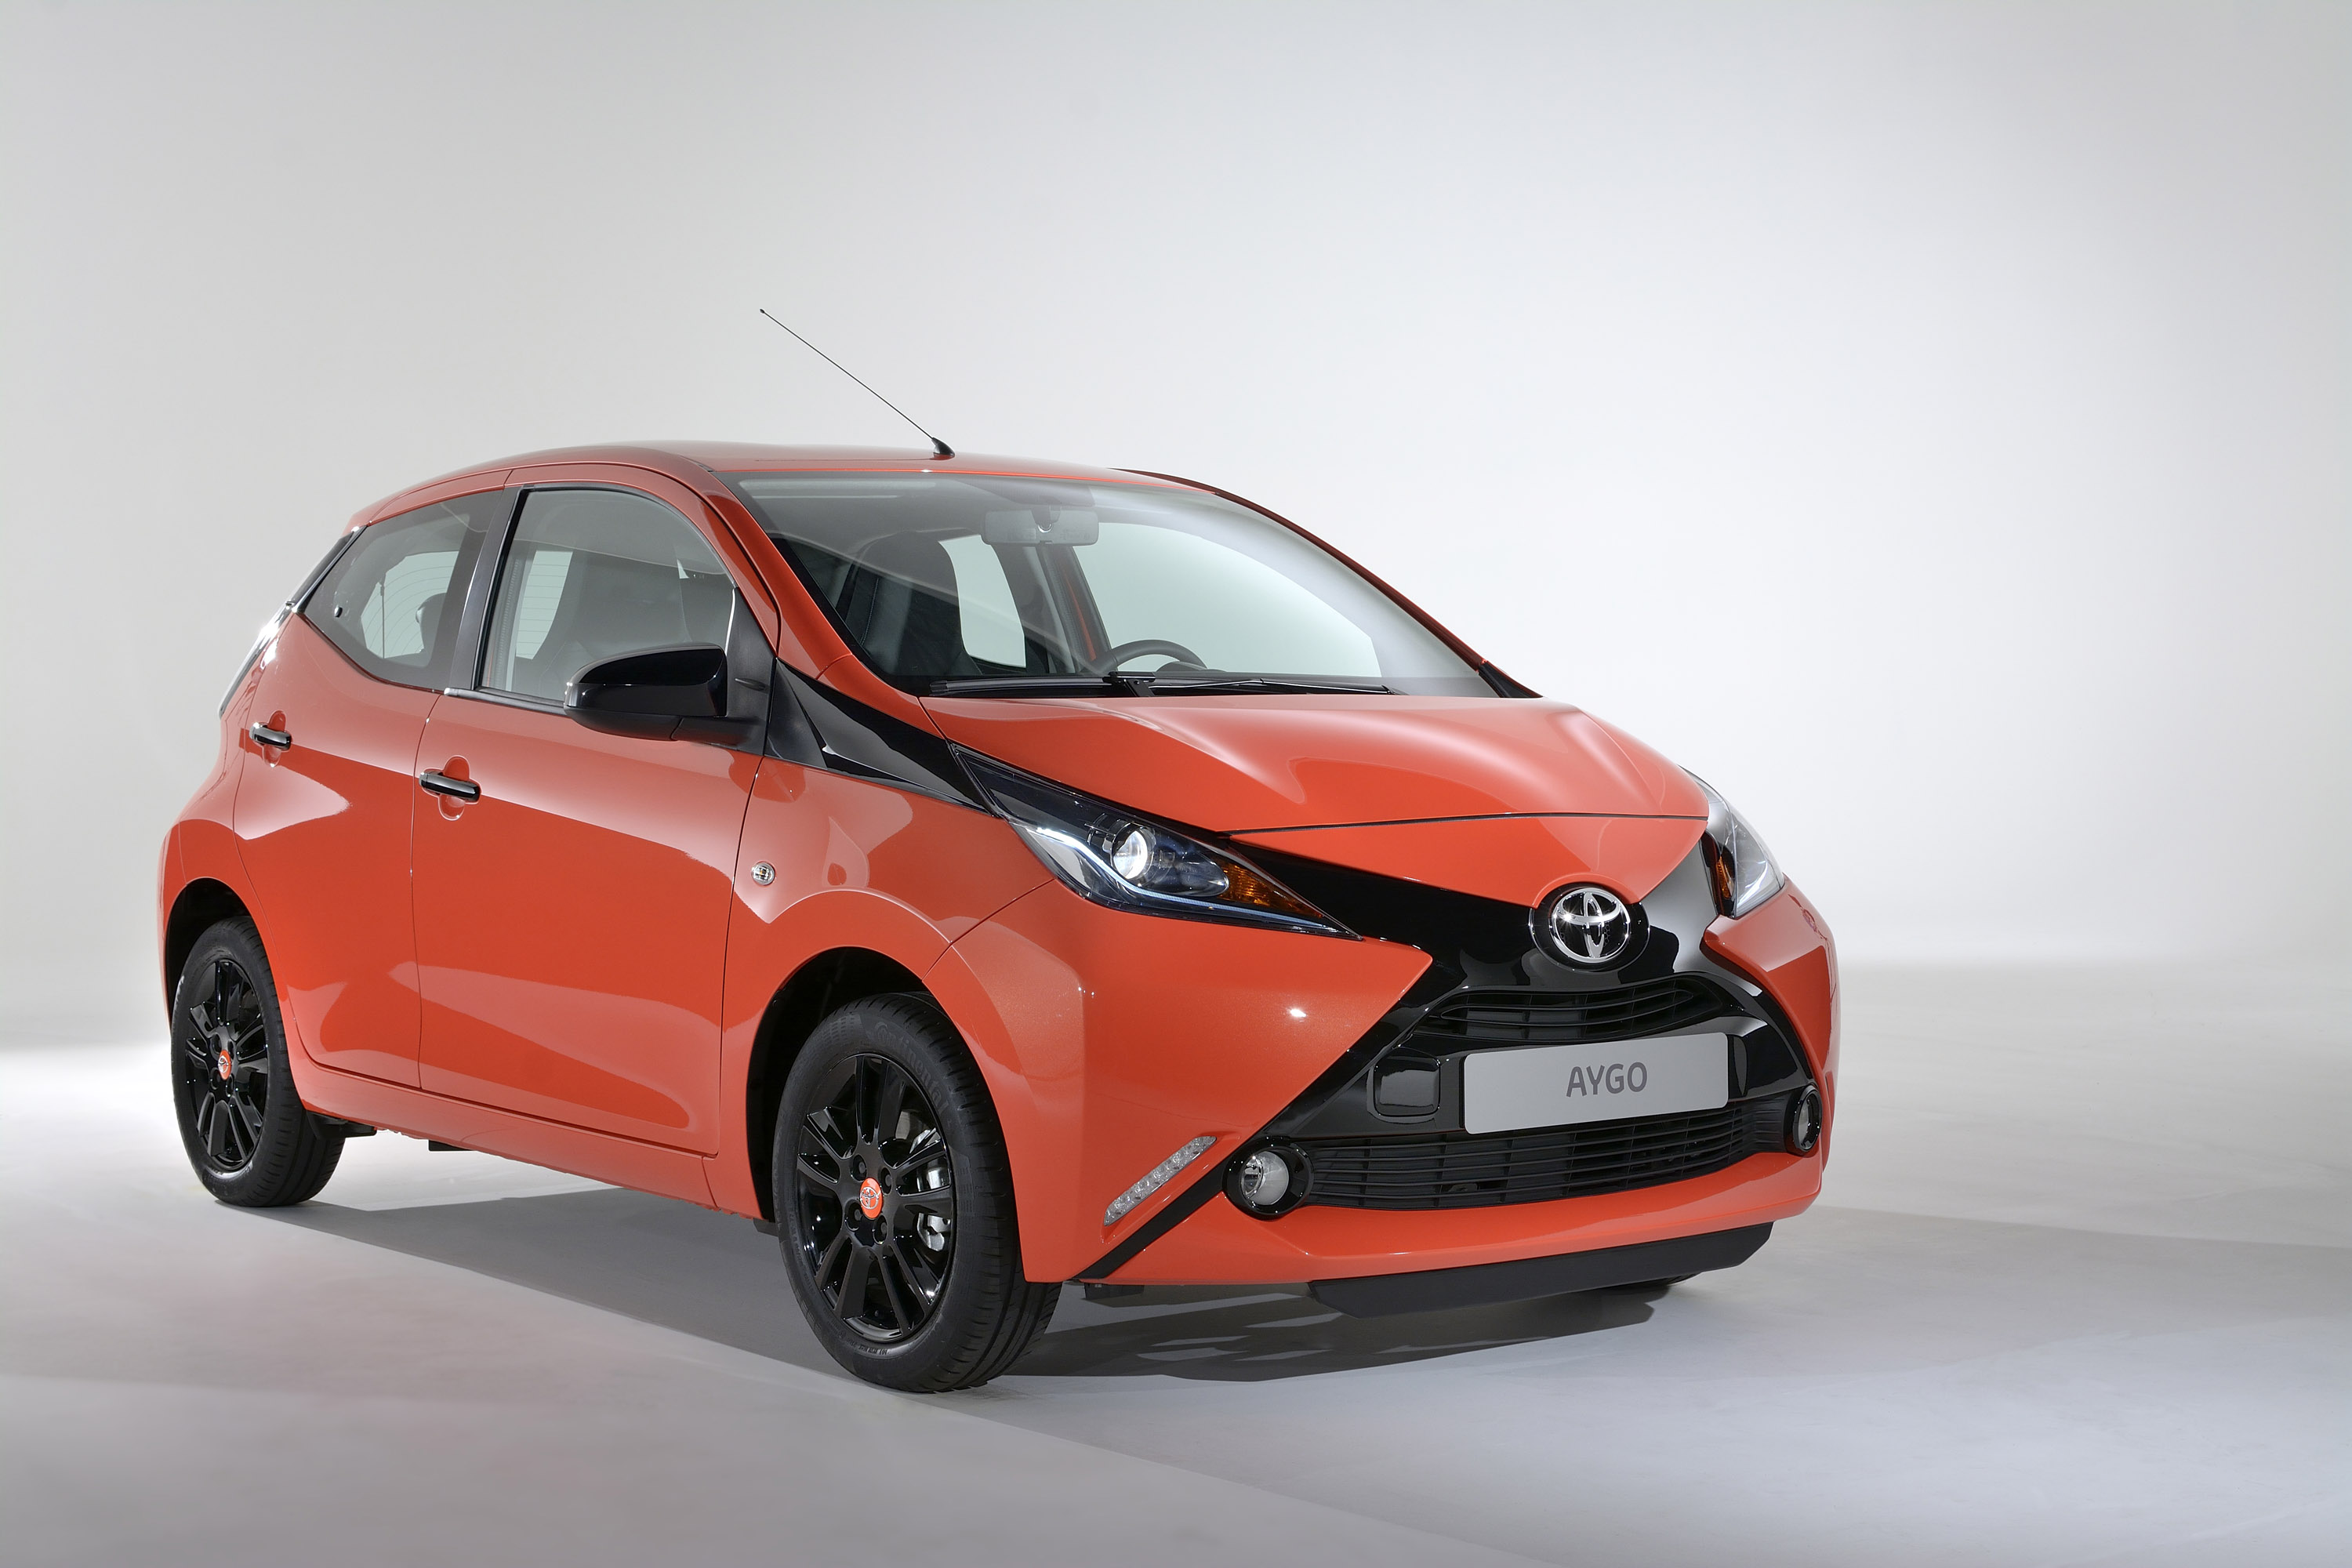 toyota aygo hd pictures  carsinvasioncom